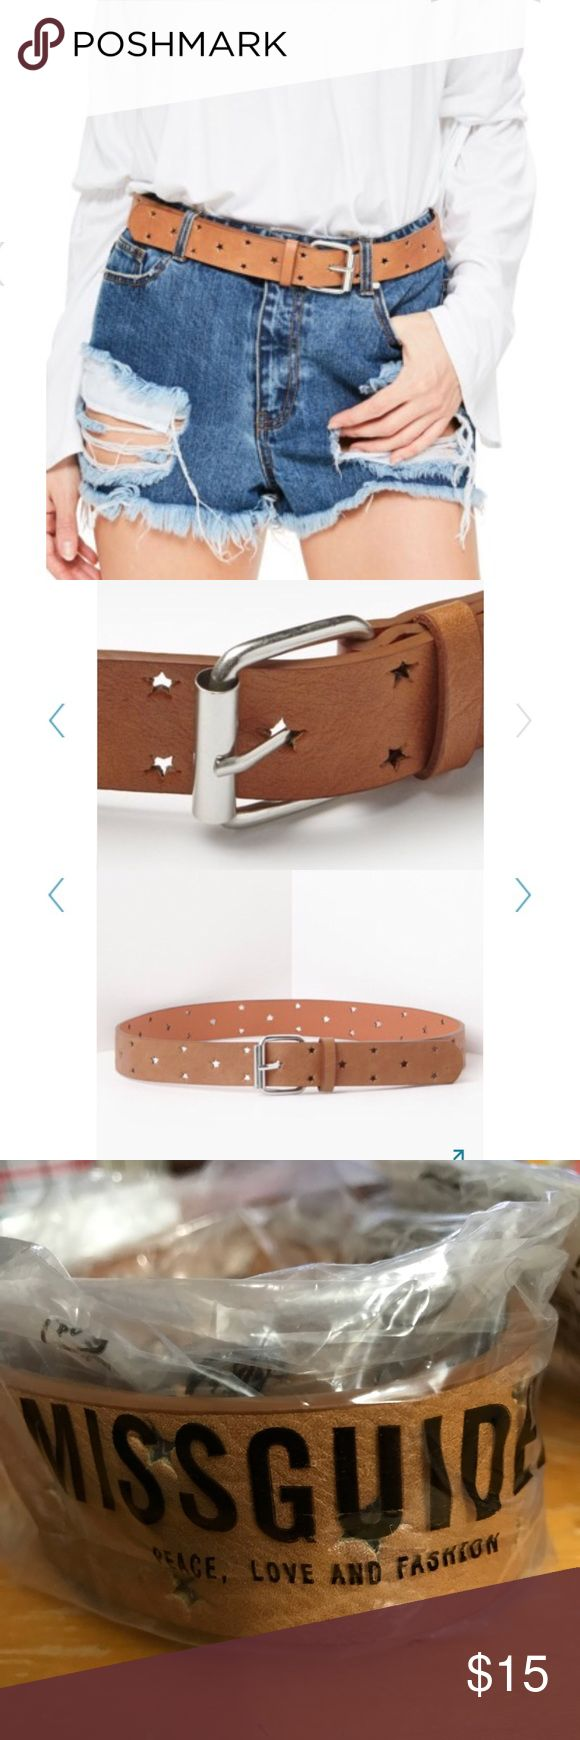 """Missguided Cutout Star Faux Leather Belt OS New with tags!  Missguided Cutout Star Faux Leather Belt.  Tan with silver hardware.  Make any look more stellar with this faux leather belt perforated with laser-cut stars.  Can fit up to about a size 8/10- see length.  Holes for buckle go around entire belt (stars).  - 1 1/4"""" width; 1 3/4"""" x 1 /2"""" buckle.   38"""", prong to tip.  Sold out online! Missguided Accessories Belts"""